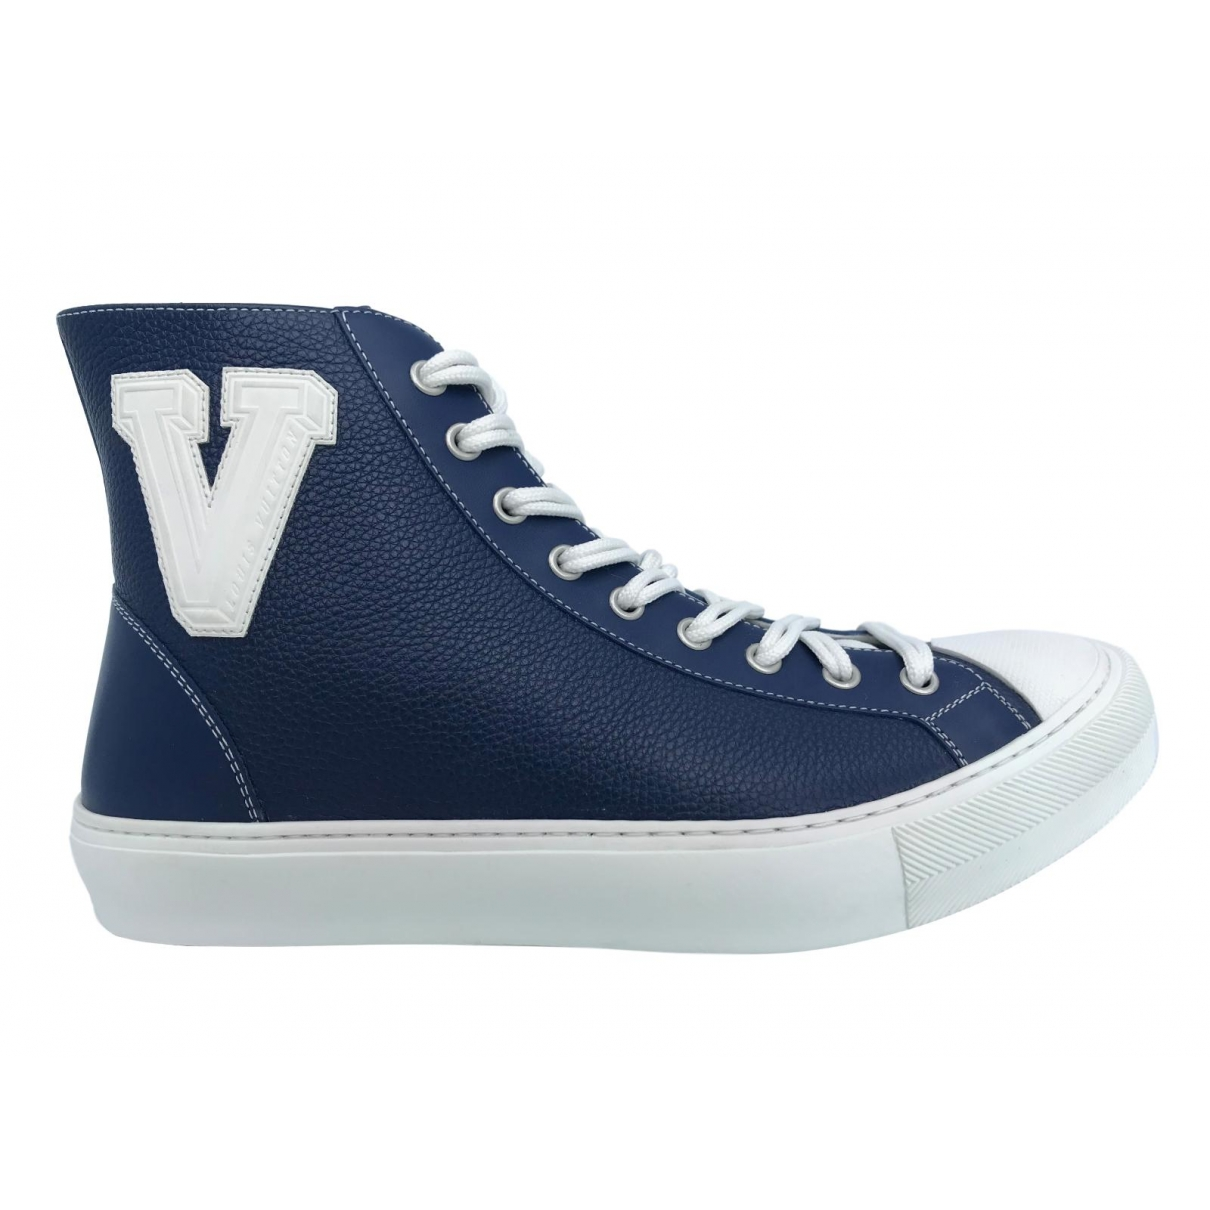 Louis Vuitton \N Navy Leather Trainers for Men 6.5 UK